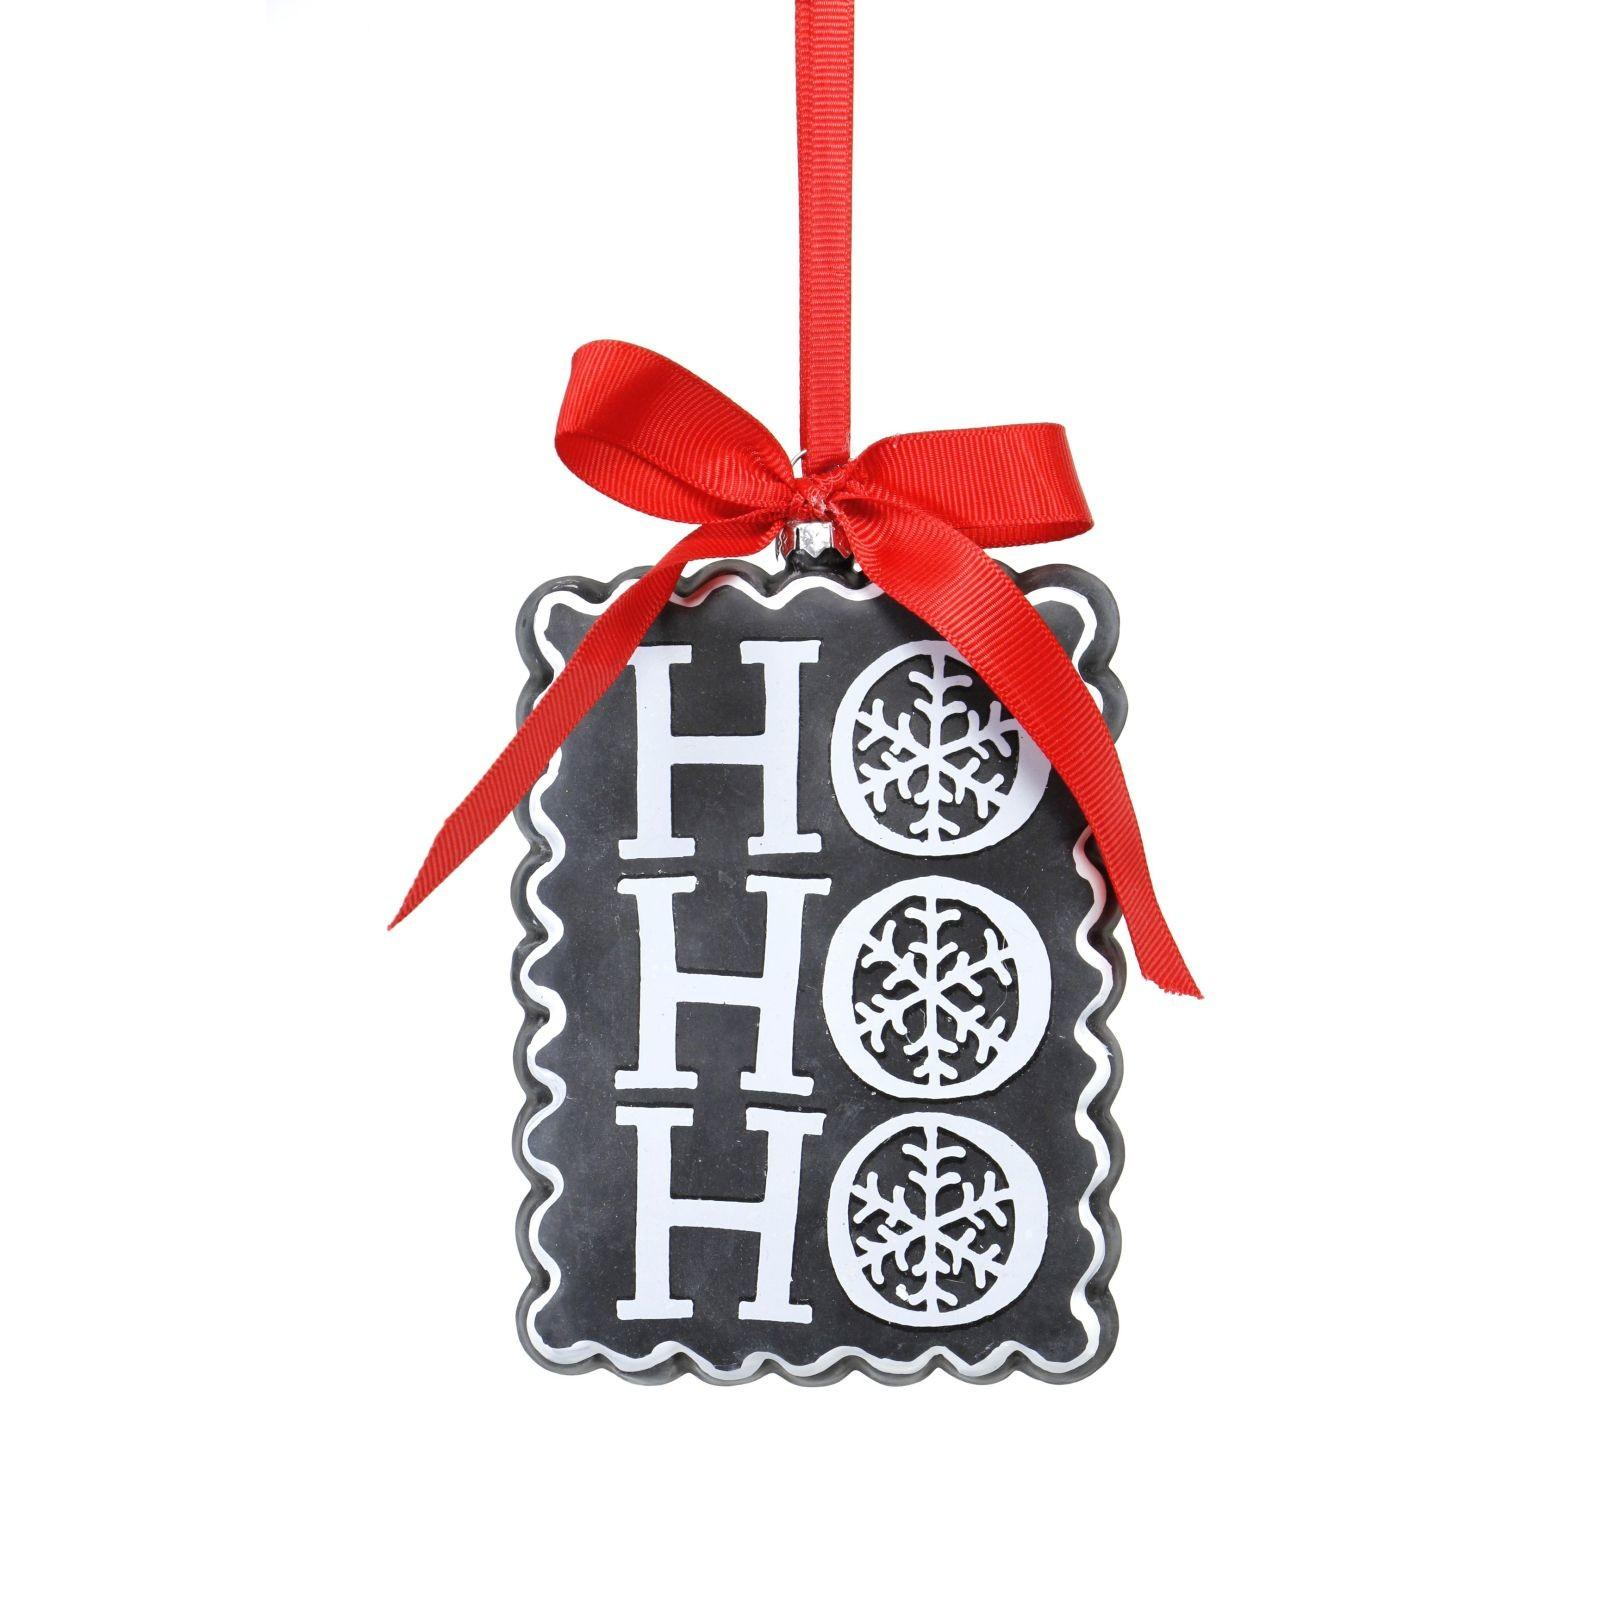 Teters Floral Products Chalkboard Hohoho Ornament Pack